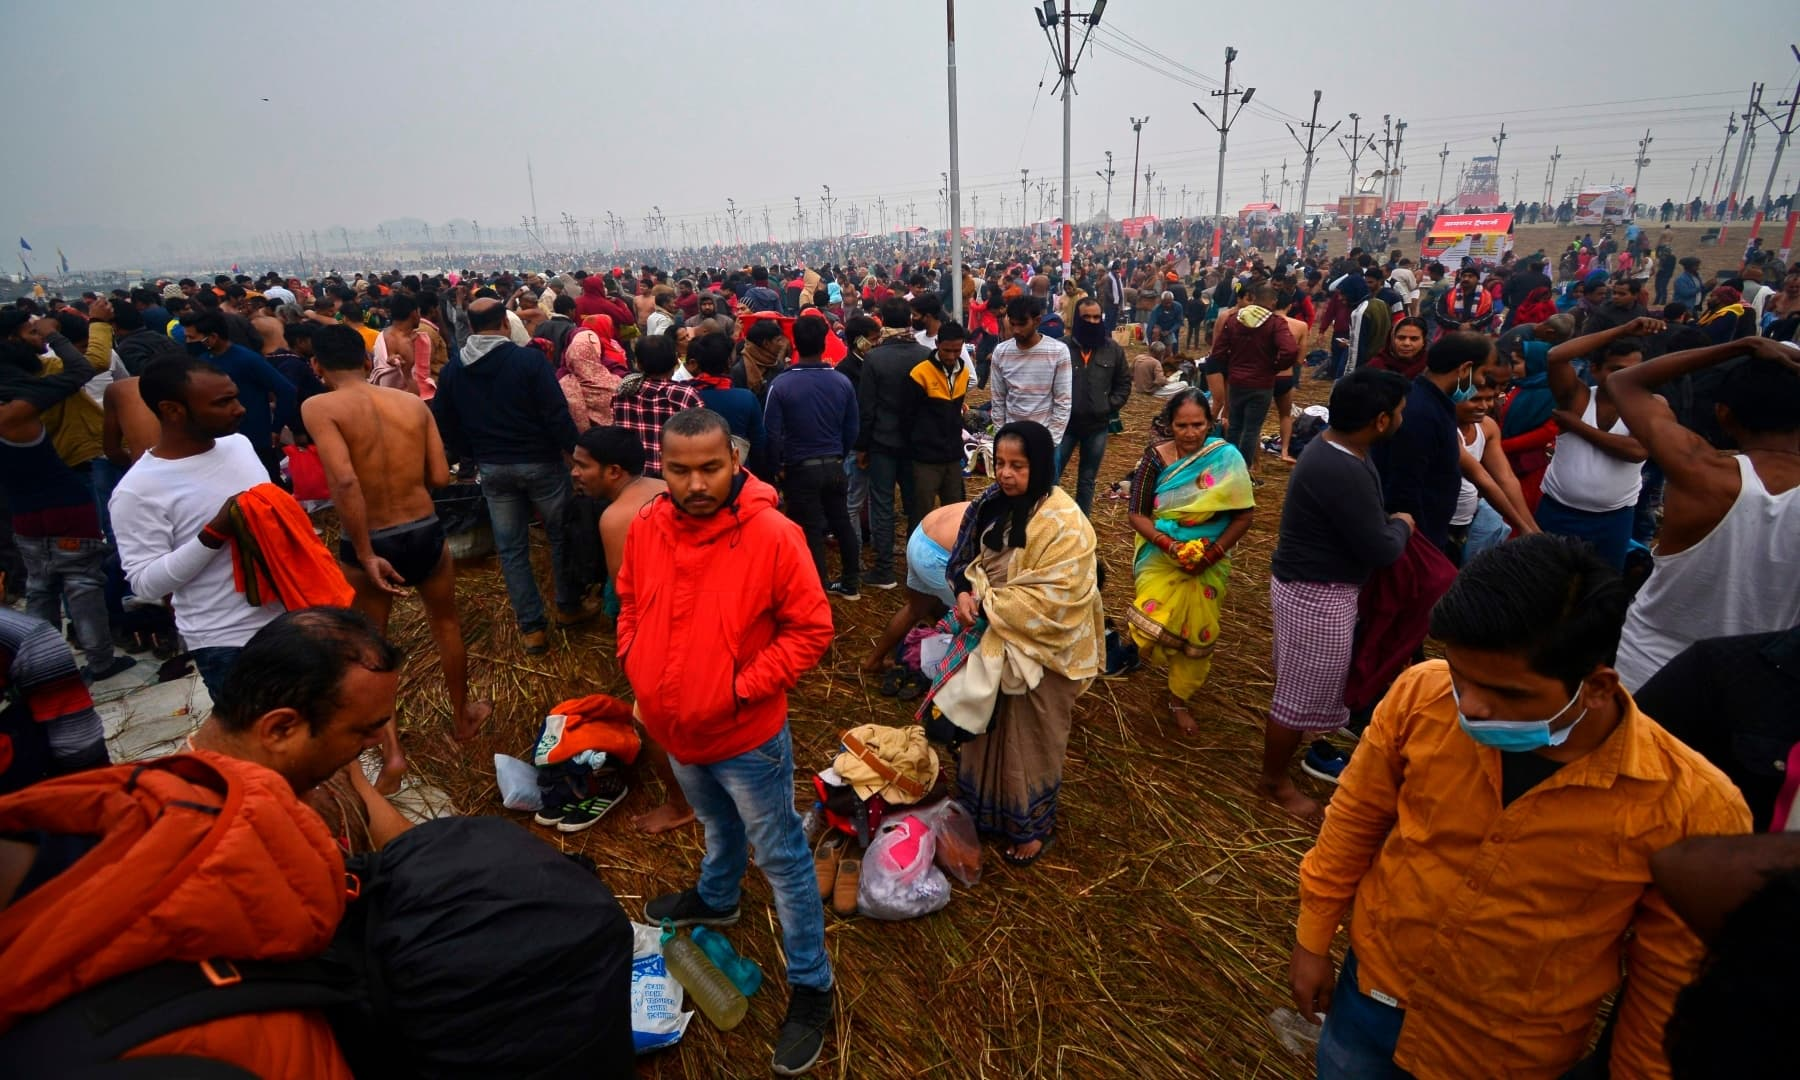 Hindu devotees crowd the banks of Sangam, the confluence of rivers Ganges, Yamuna and the mythical Saraswati, on the occasion of Makar Sankranti, in Allahabad. — AFP